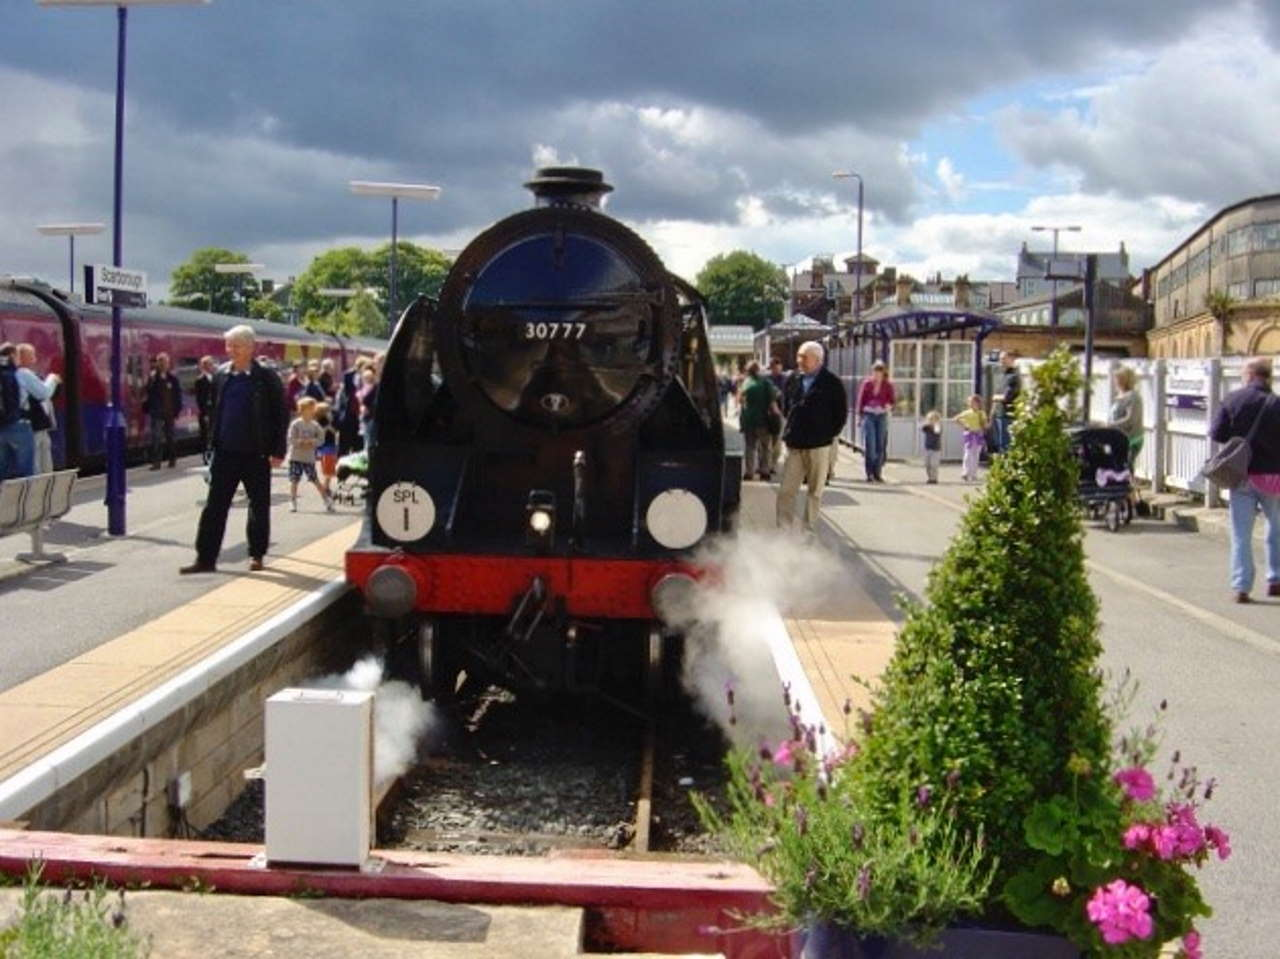 777 Sir Lamiel at Scarborough in 2006